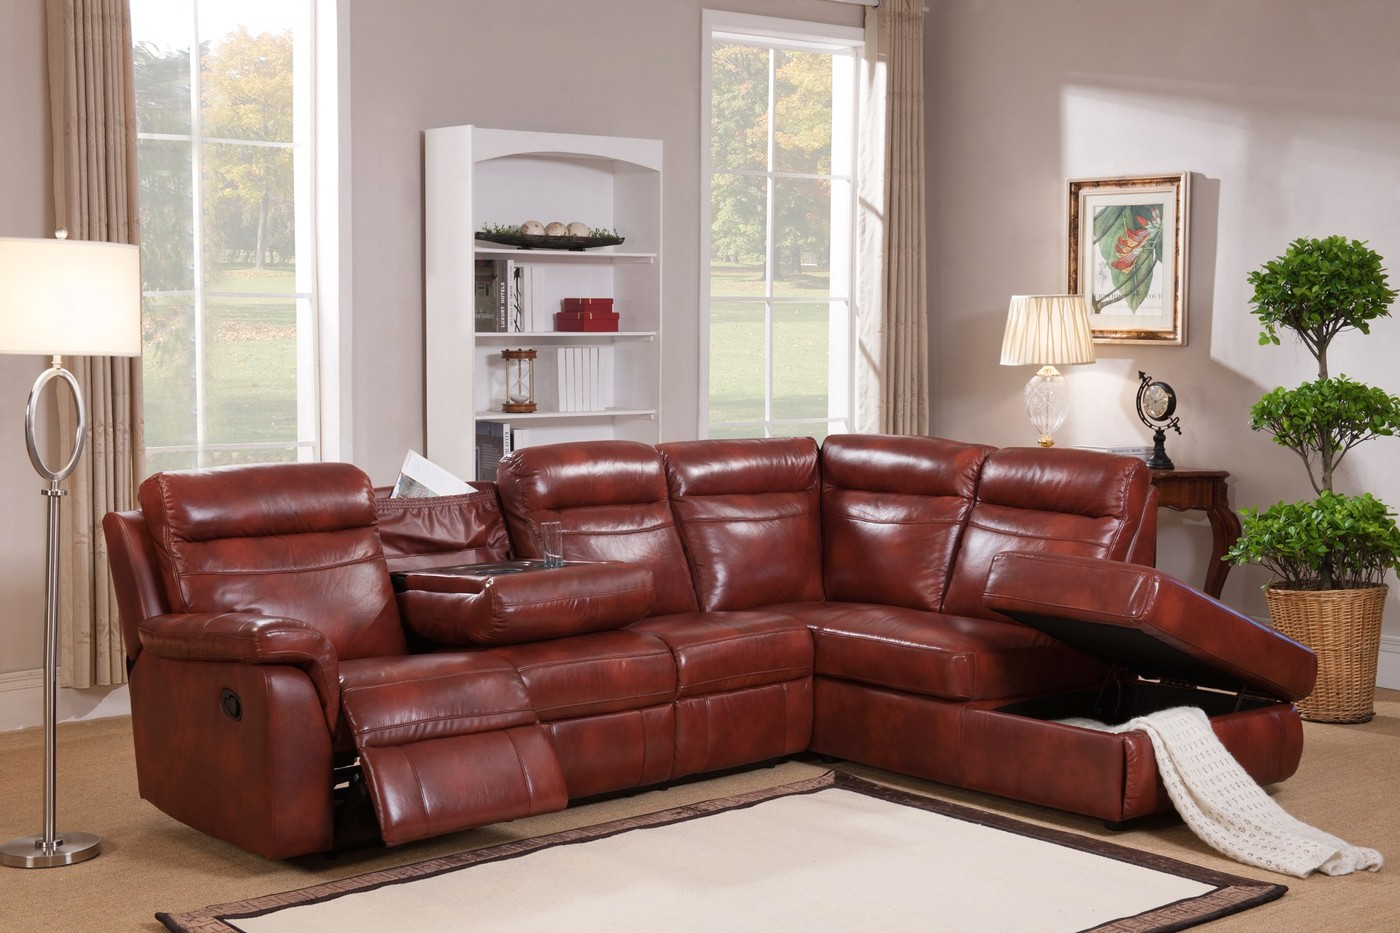 Hariston genuine caramel leather reclining sectional sofa with storage chaise - Leather reclining sectional with chaise ...